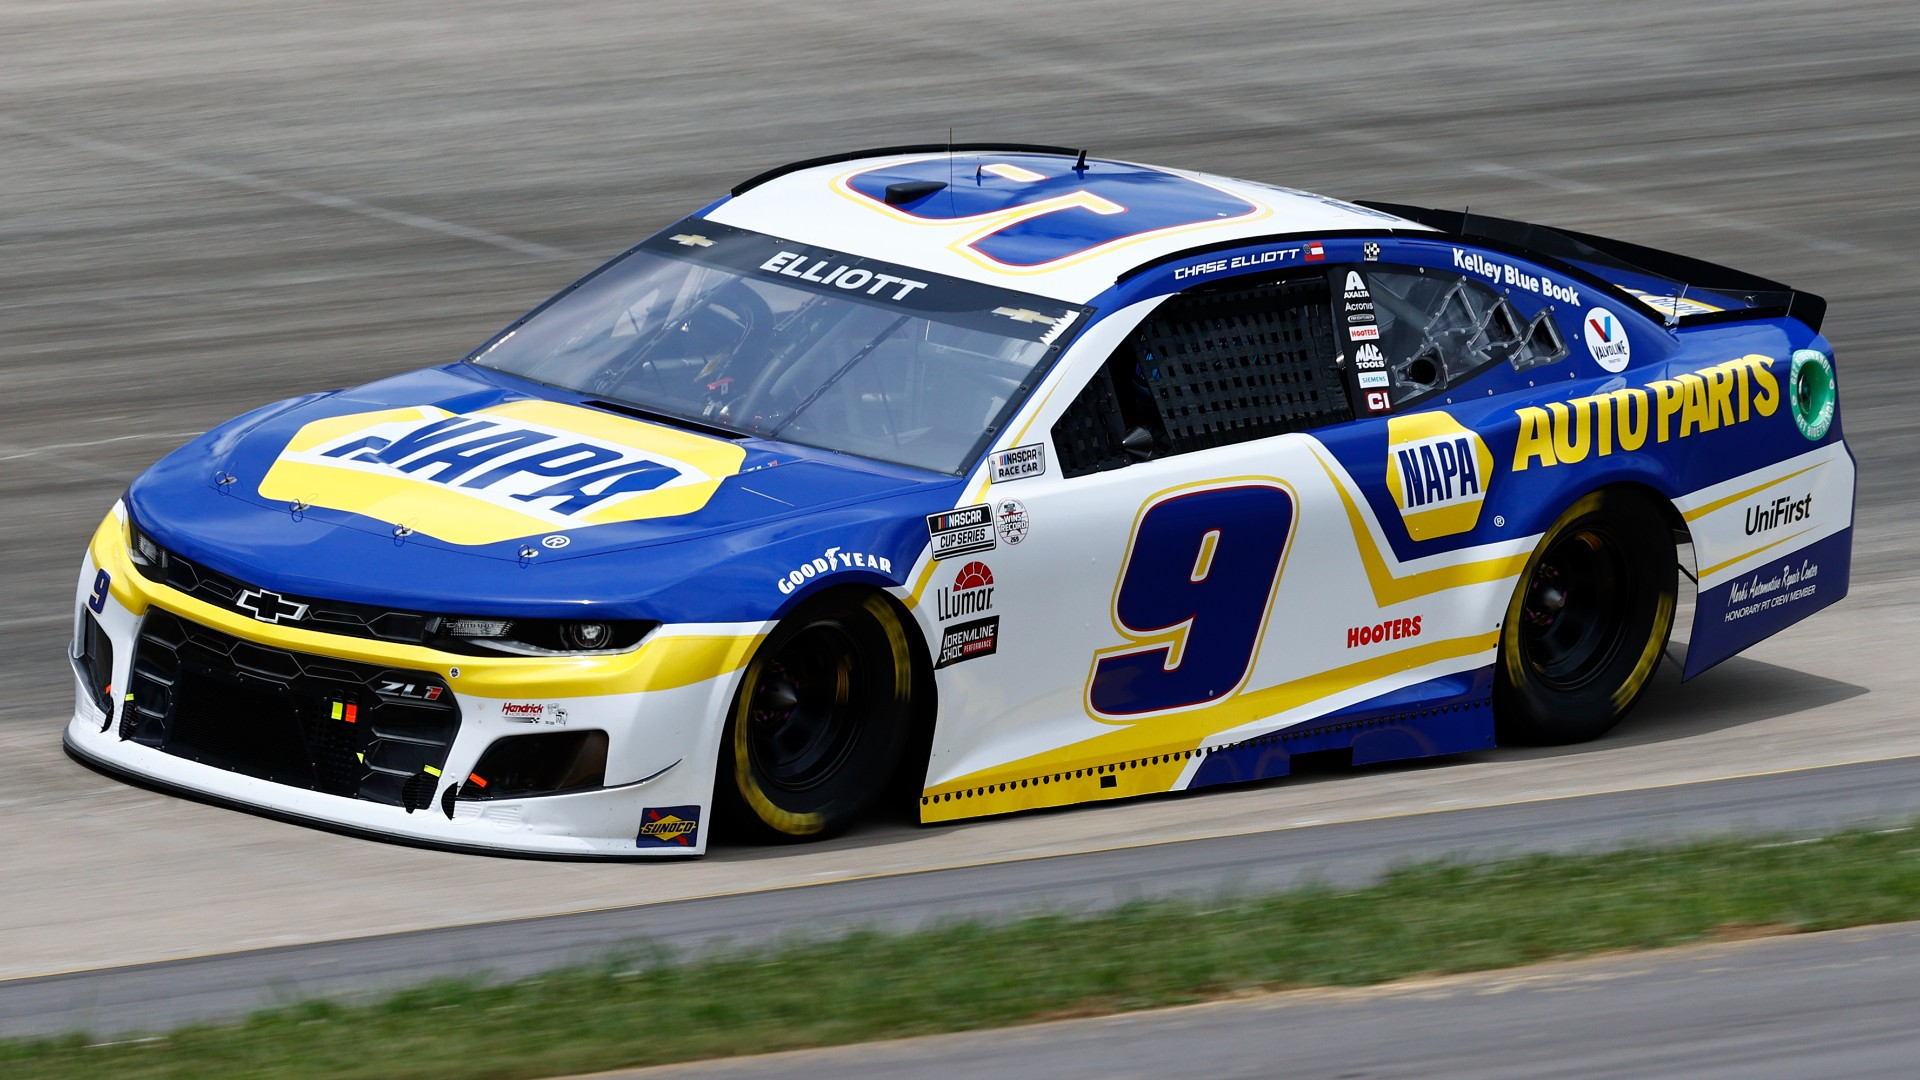 Chase Elliott has been disqualified after a race in Nashville for loose falls in the car